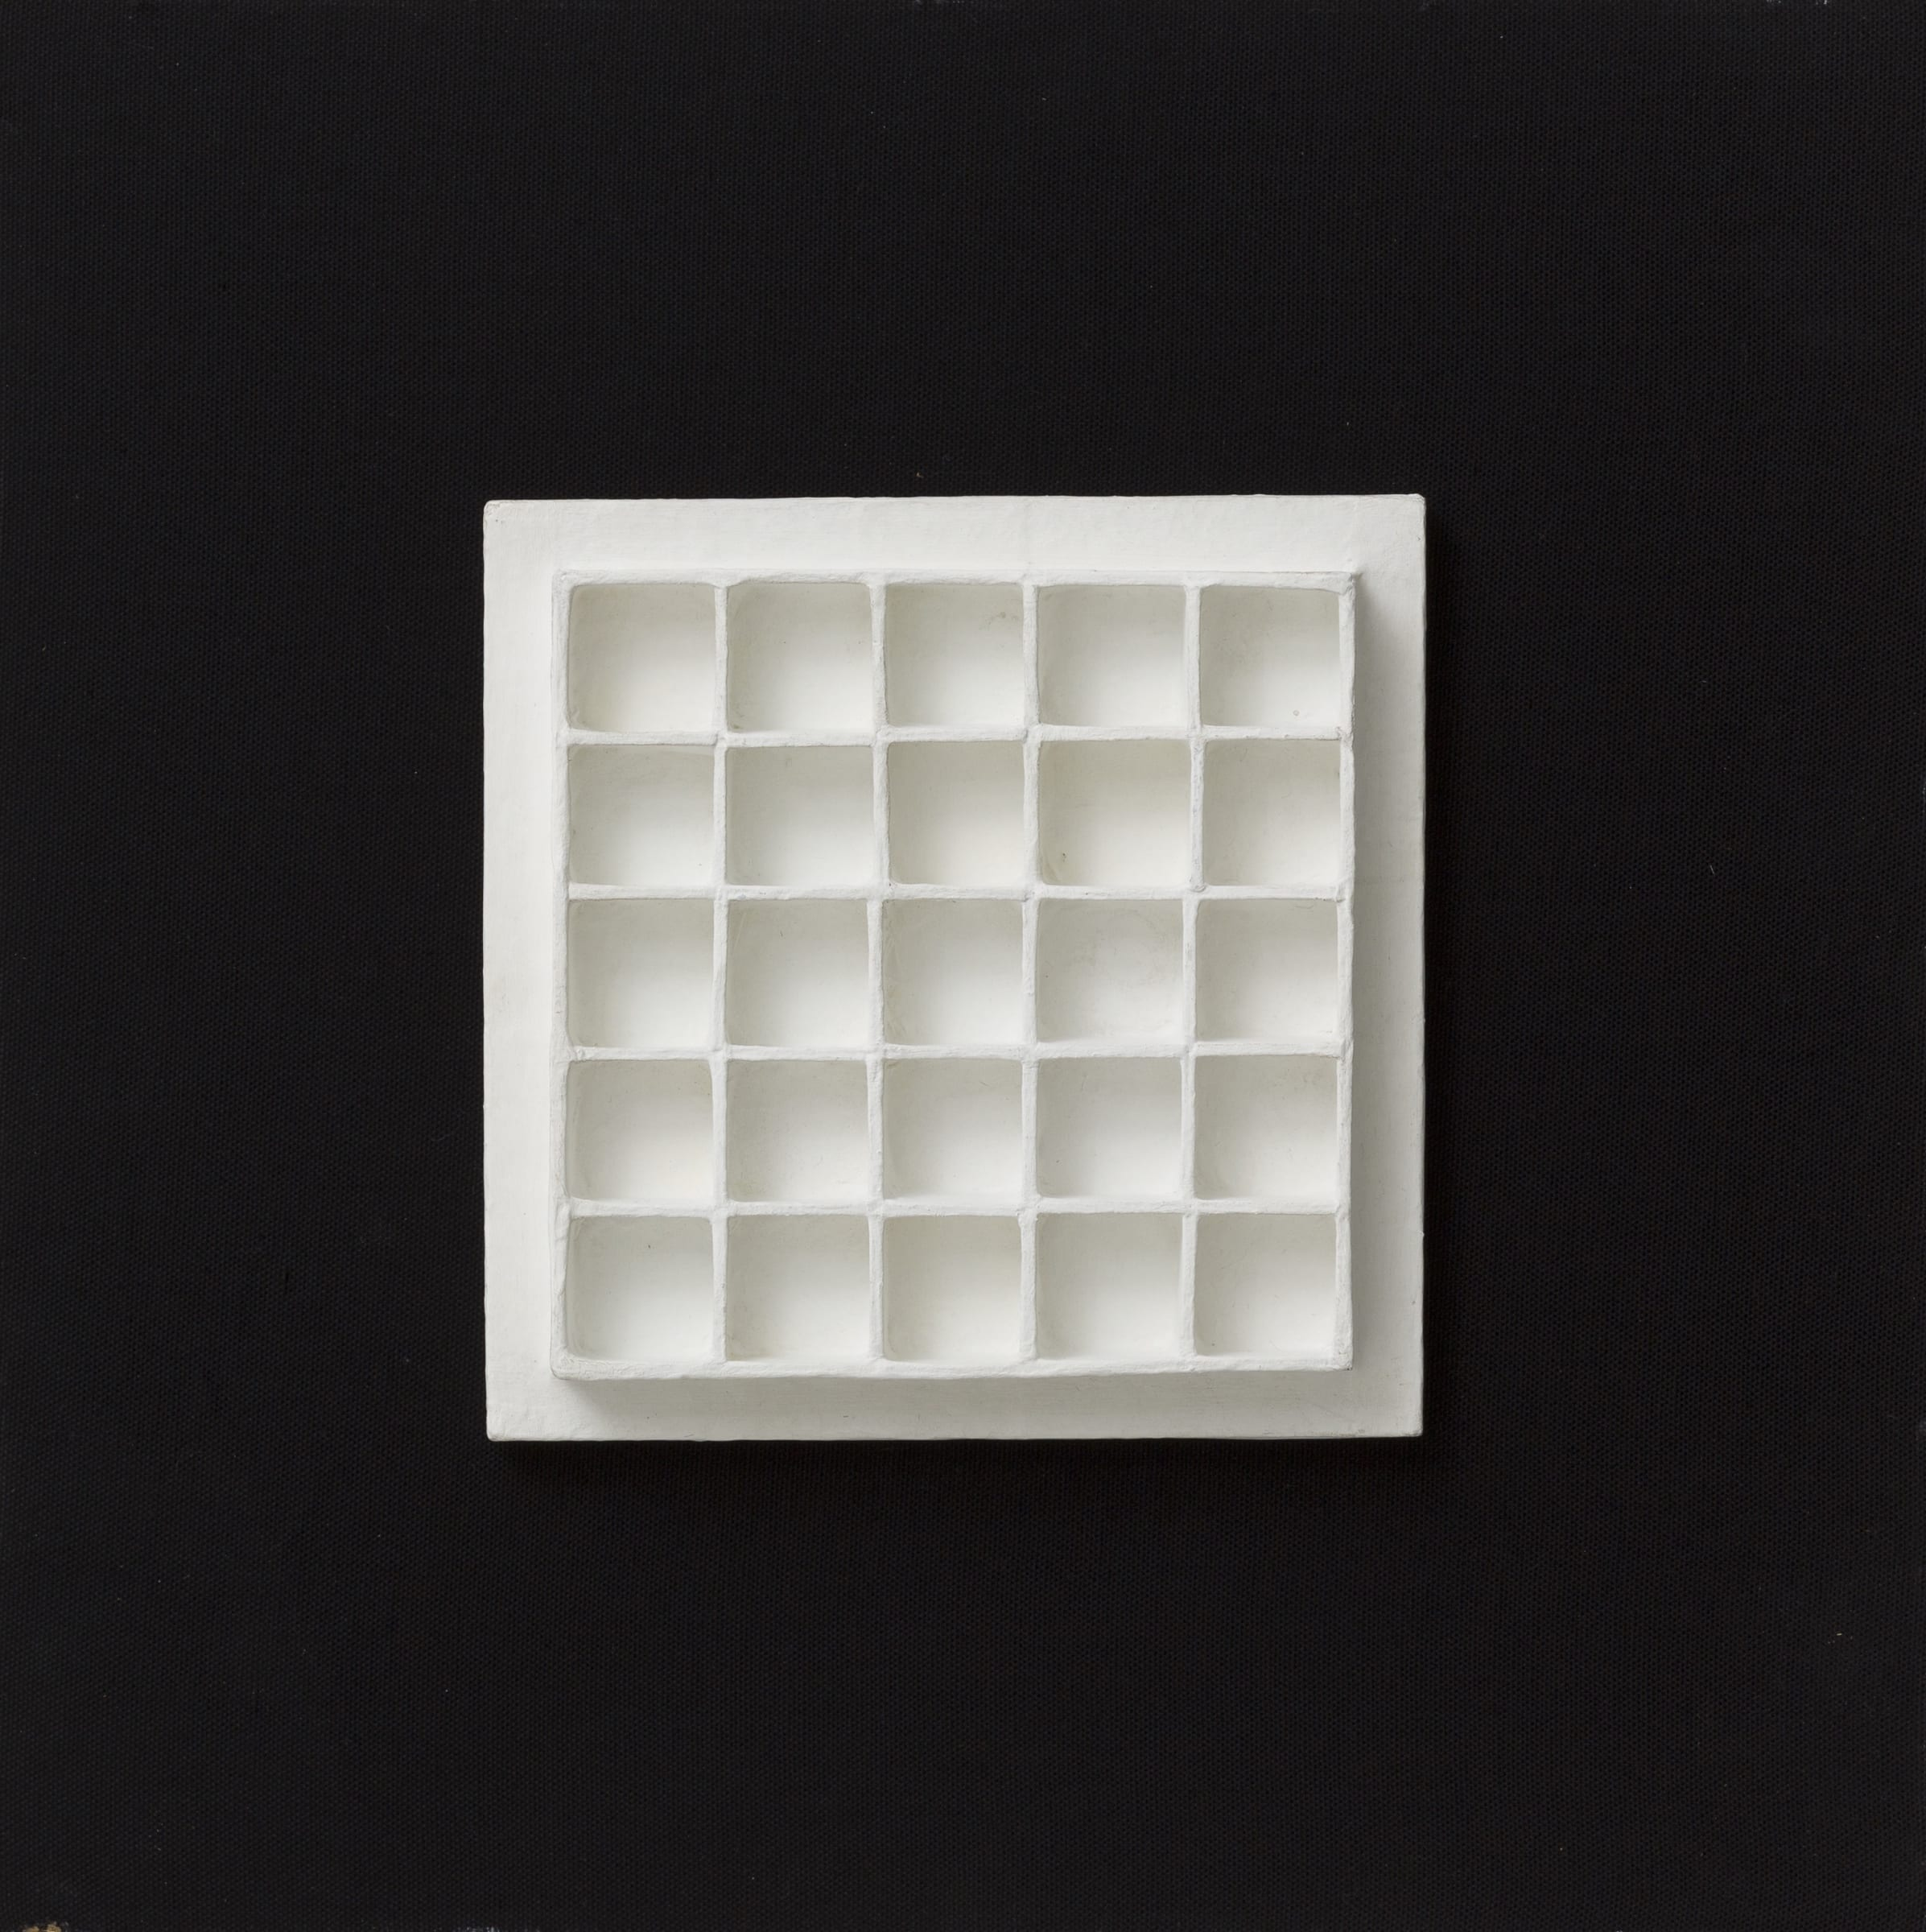 "<span class=""link fancybox-details-link""><a href=""/artists/100-jan-schoonhoven/works/11088-jan-schoonhoven-r-70-14-1970/"">View Detail Page</a></span><div class=""artist""><span class=""artist""><strong>JAN SCHOONHOVEN</strong></span></div>